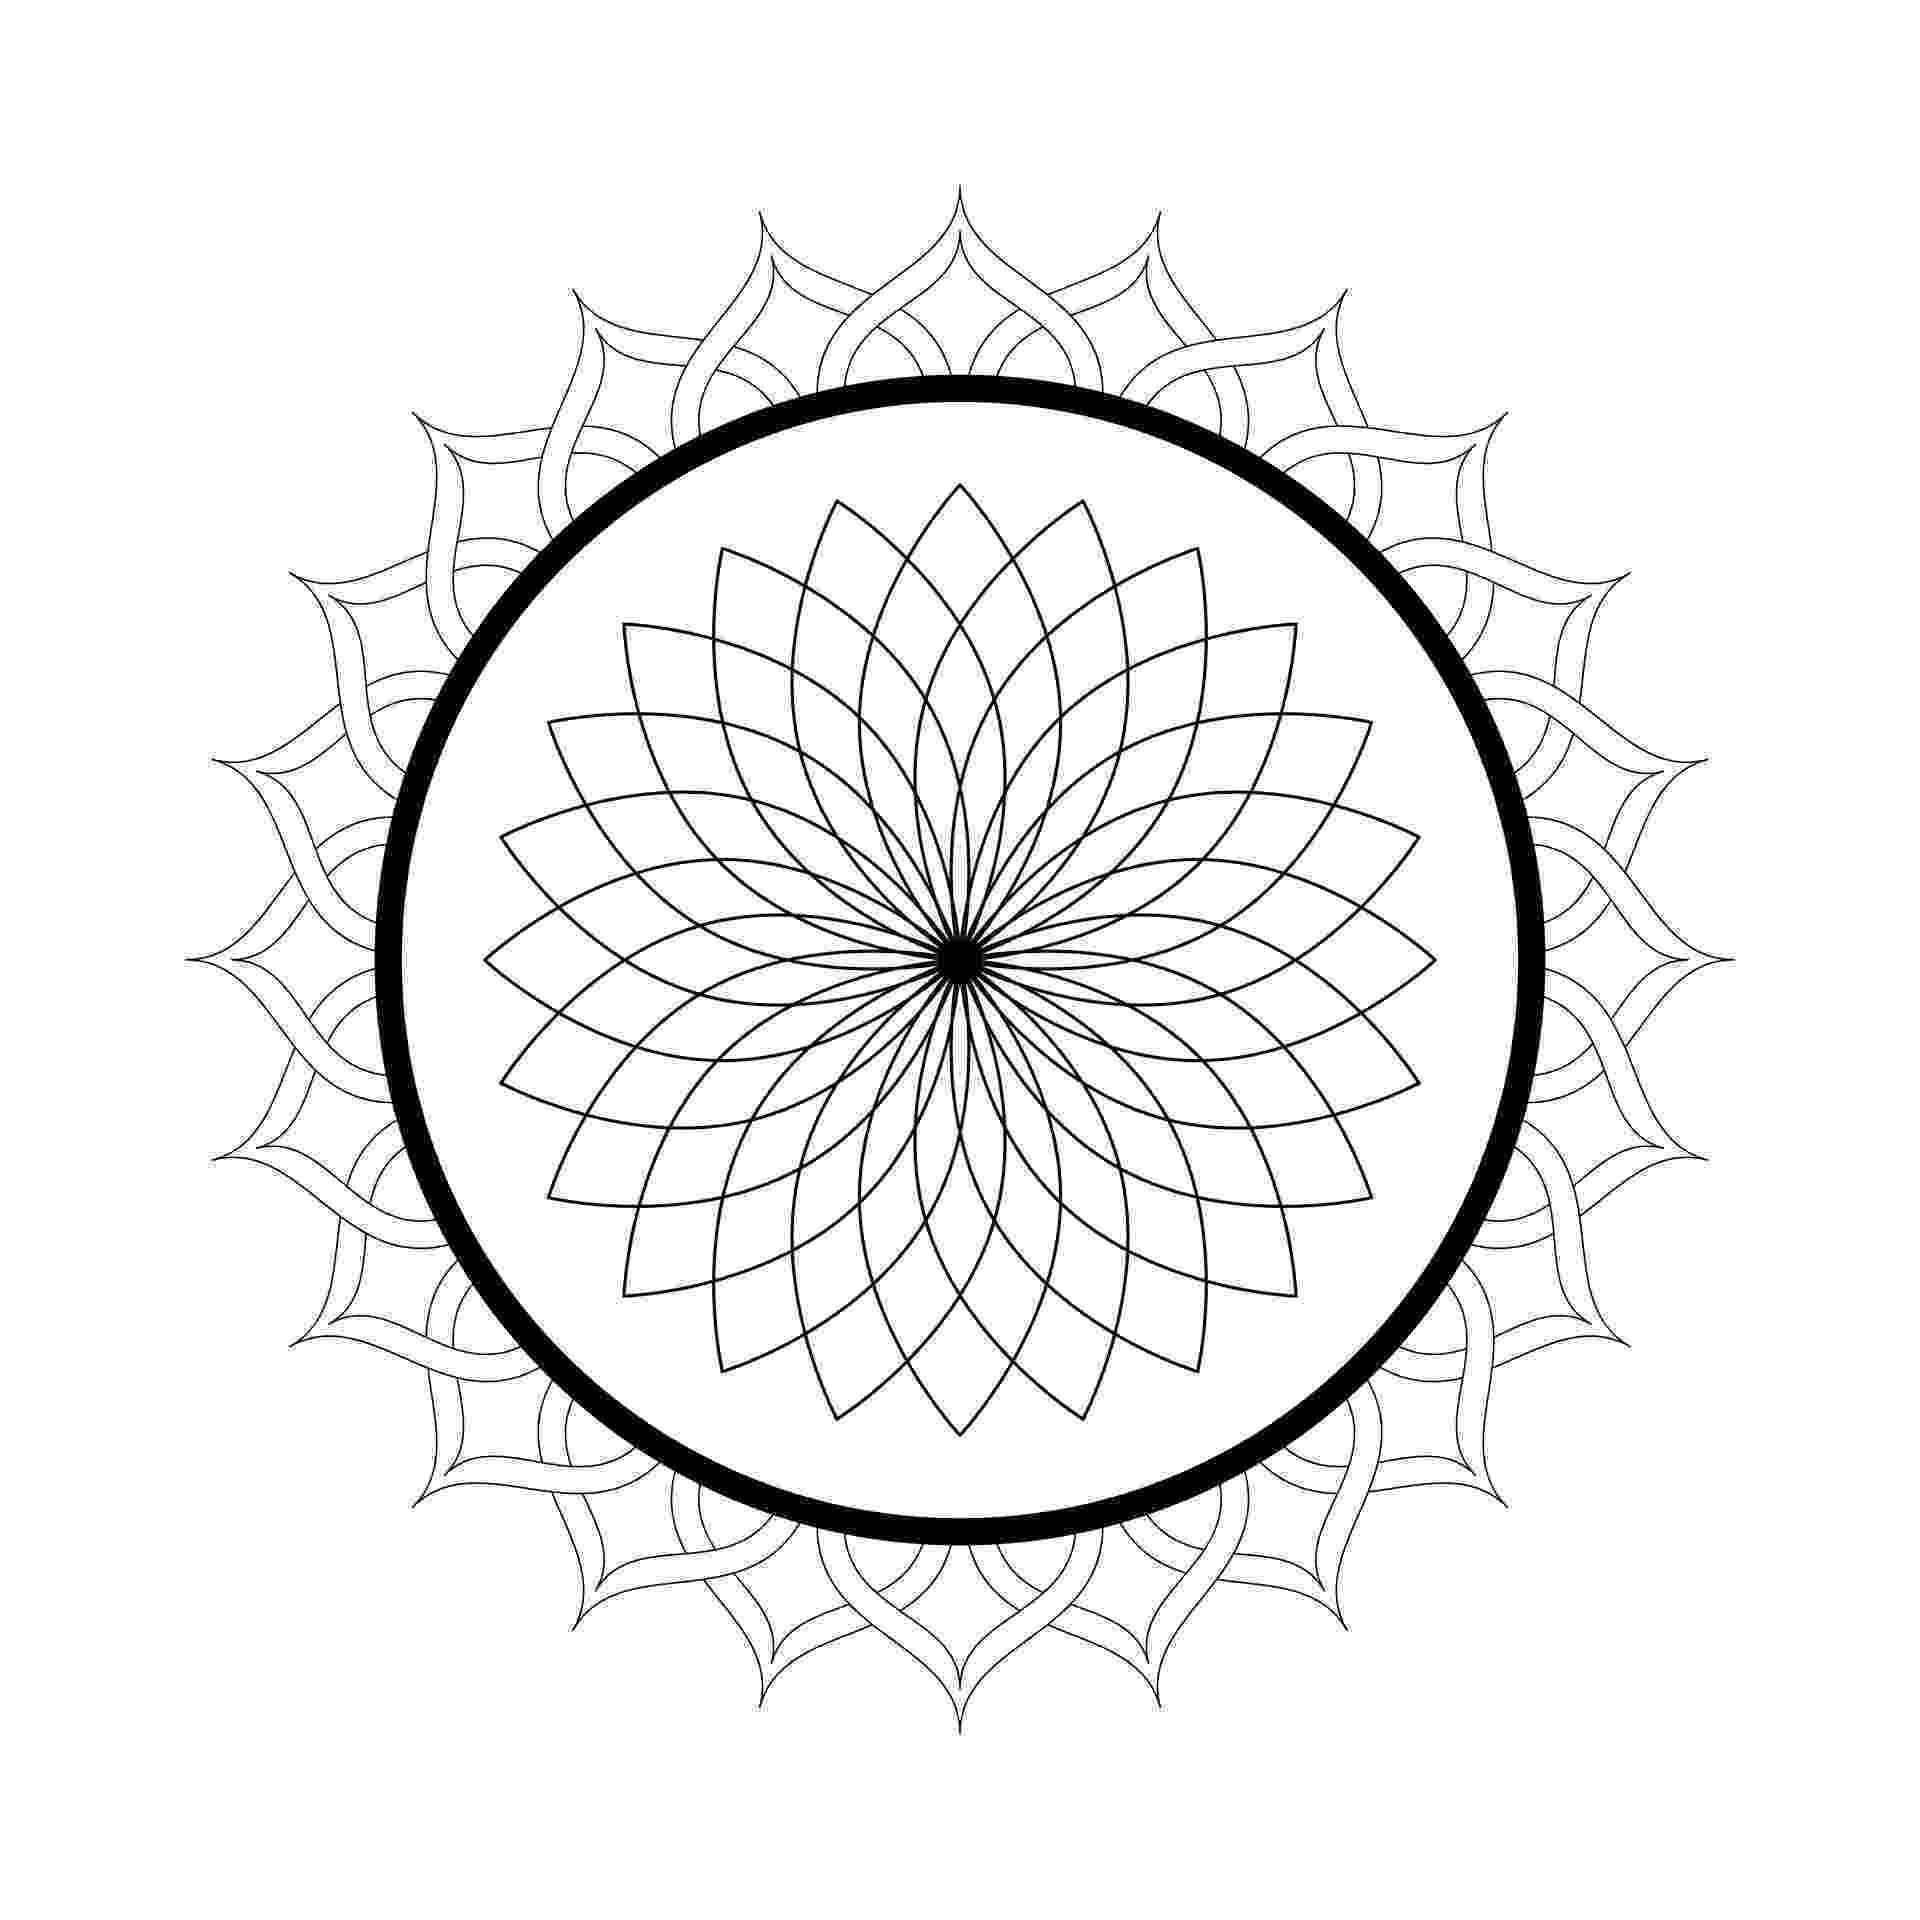 free online mandala coloring pages for adults 901 best basic mandala images on pinterest coloring coloring online mandala adults pages free for